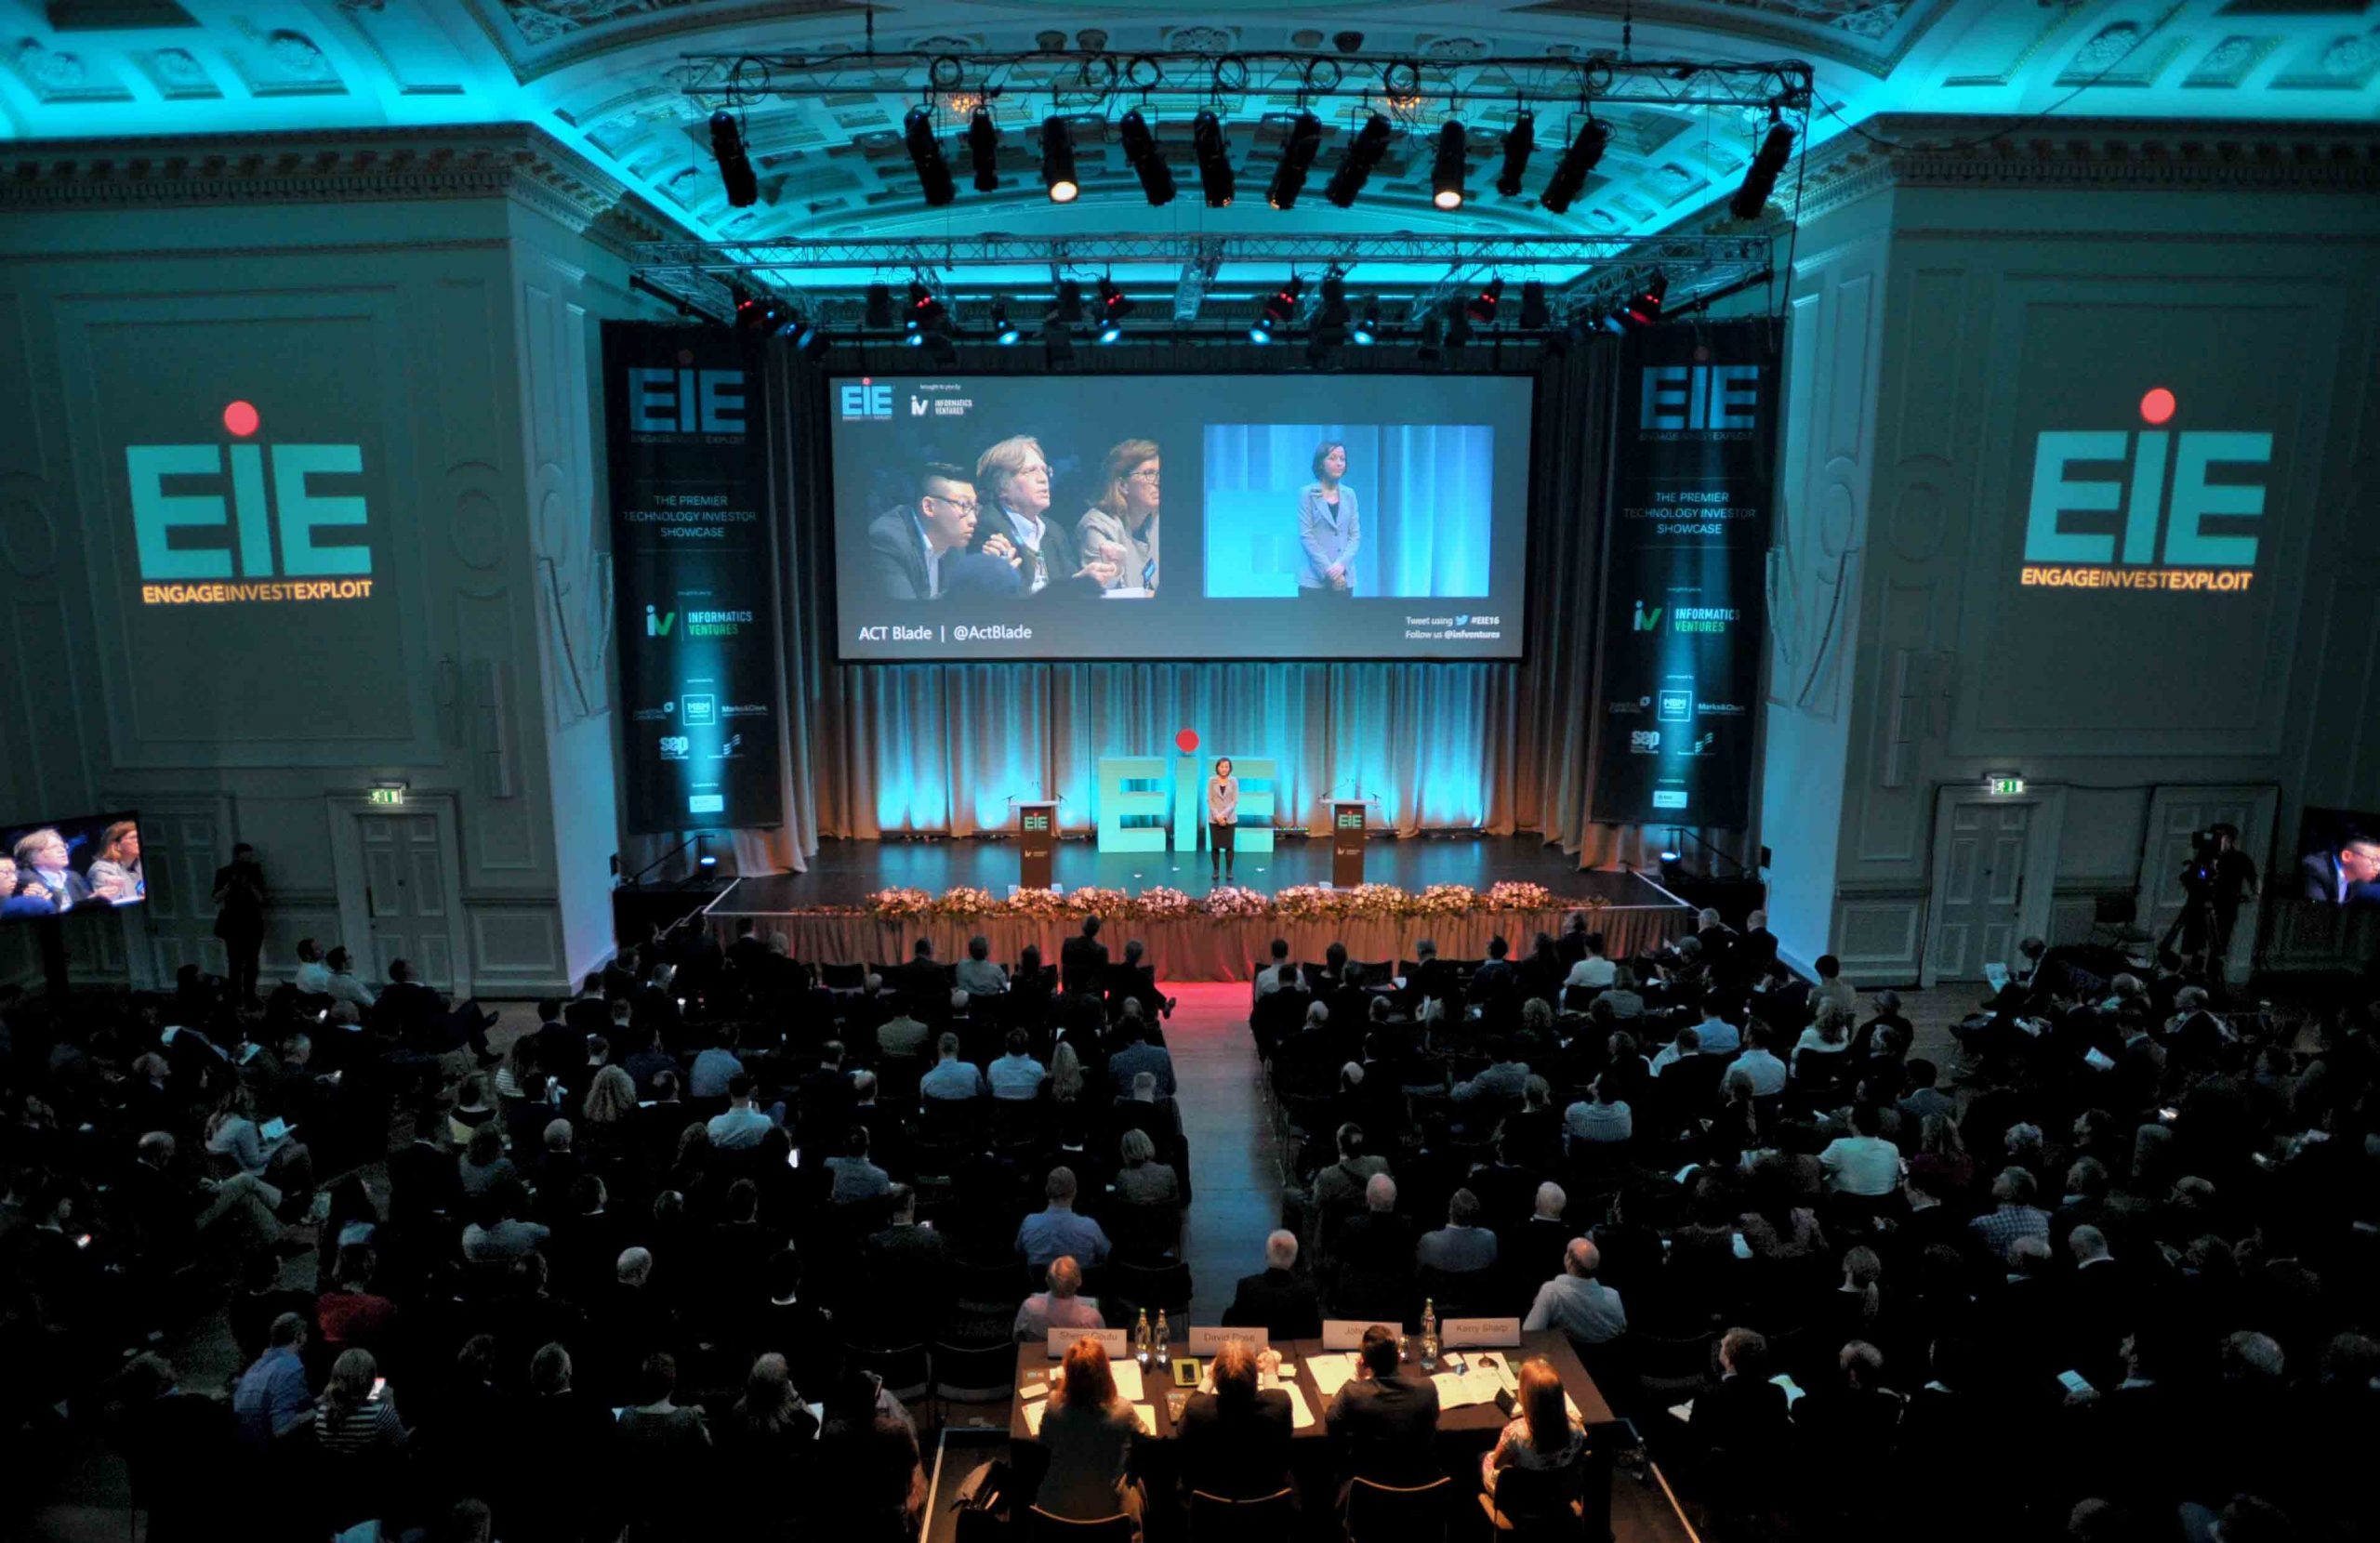 Assembly Rooms Edinburgh launches hybrid solution for events industry - EIE event-Business News Scotland